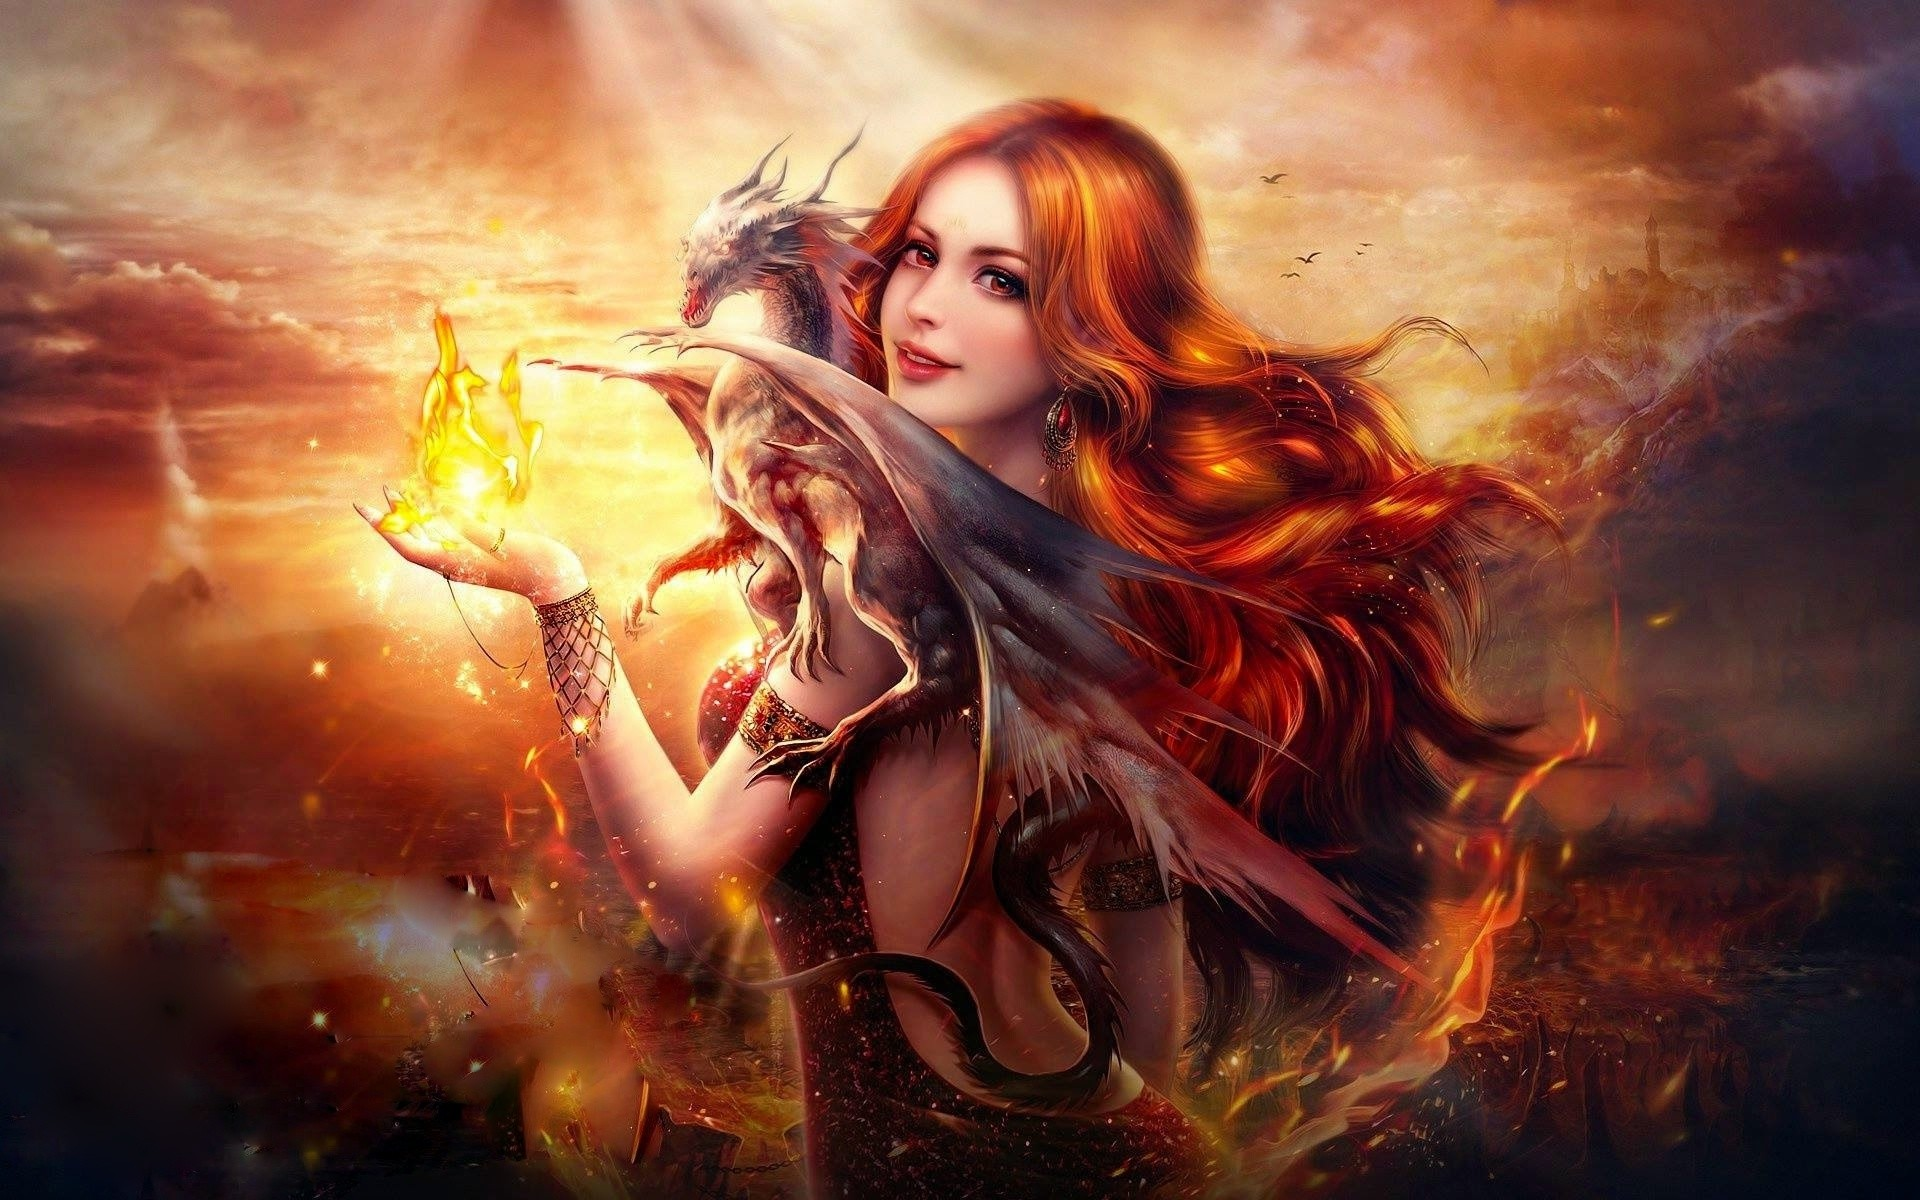 Game girls Wallpapers and Backgrounds 1440×900 Images Girls Wallpapers (49  Wallpapers)  